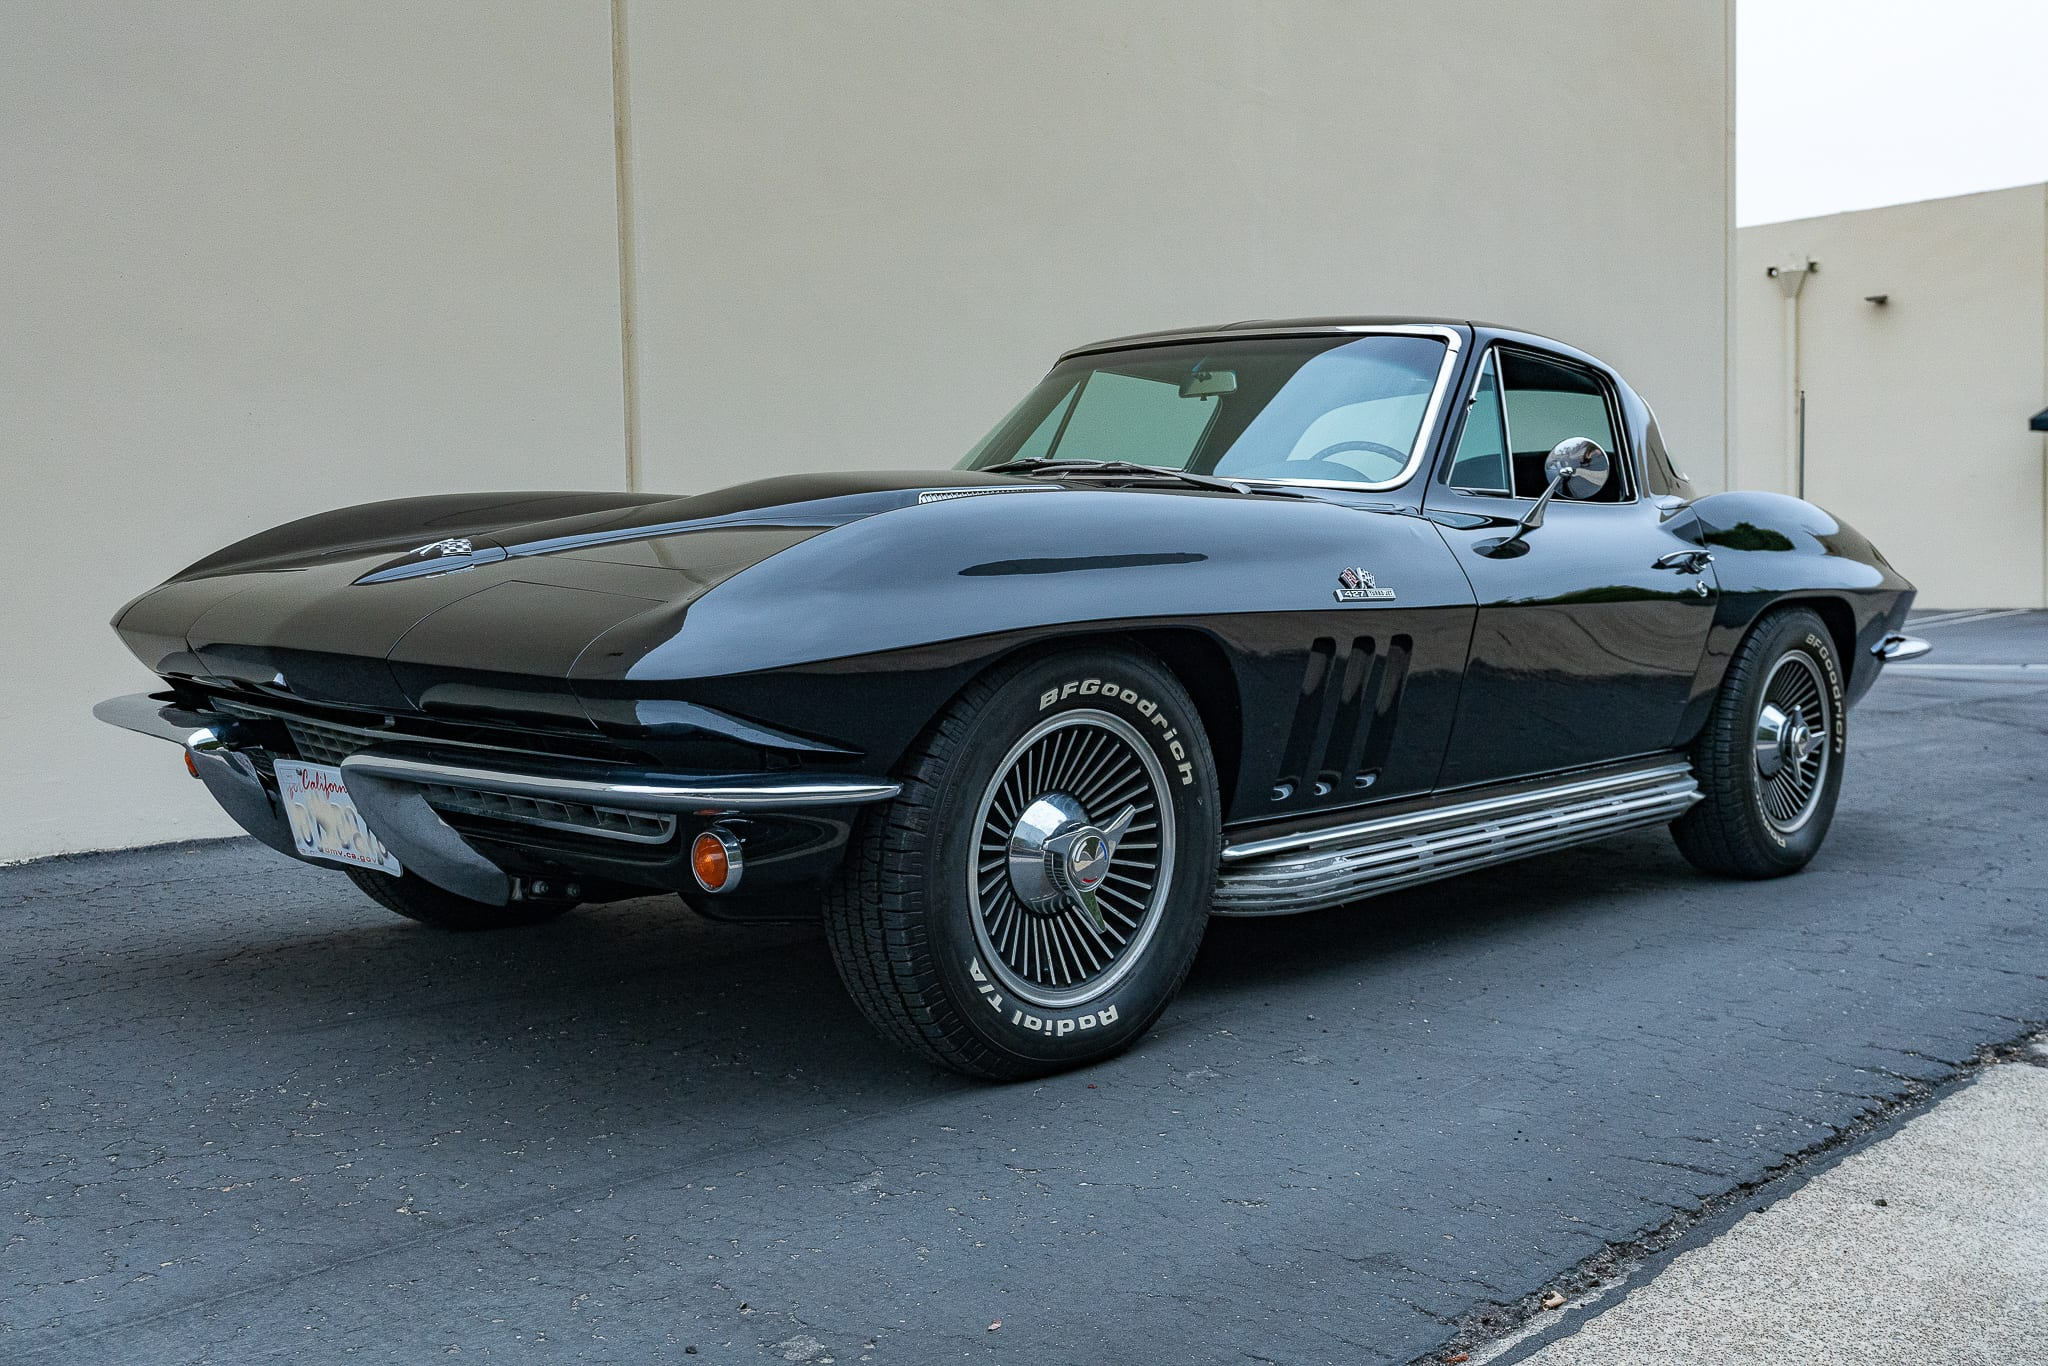 1966 Corvette Stingray 427 4-speed #109631